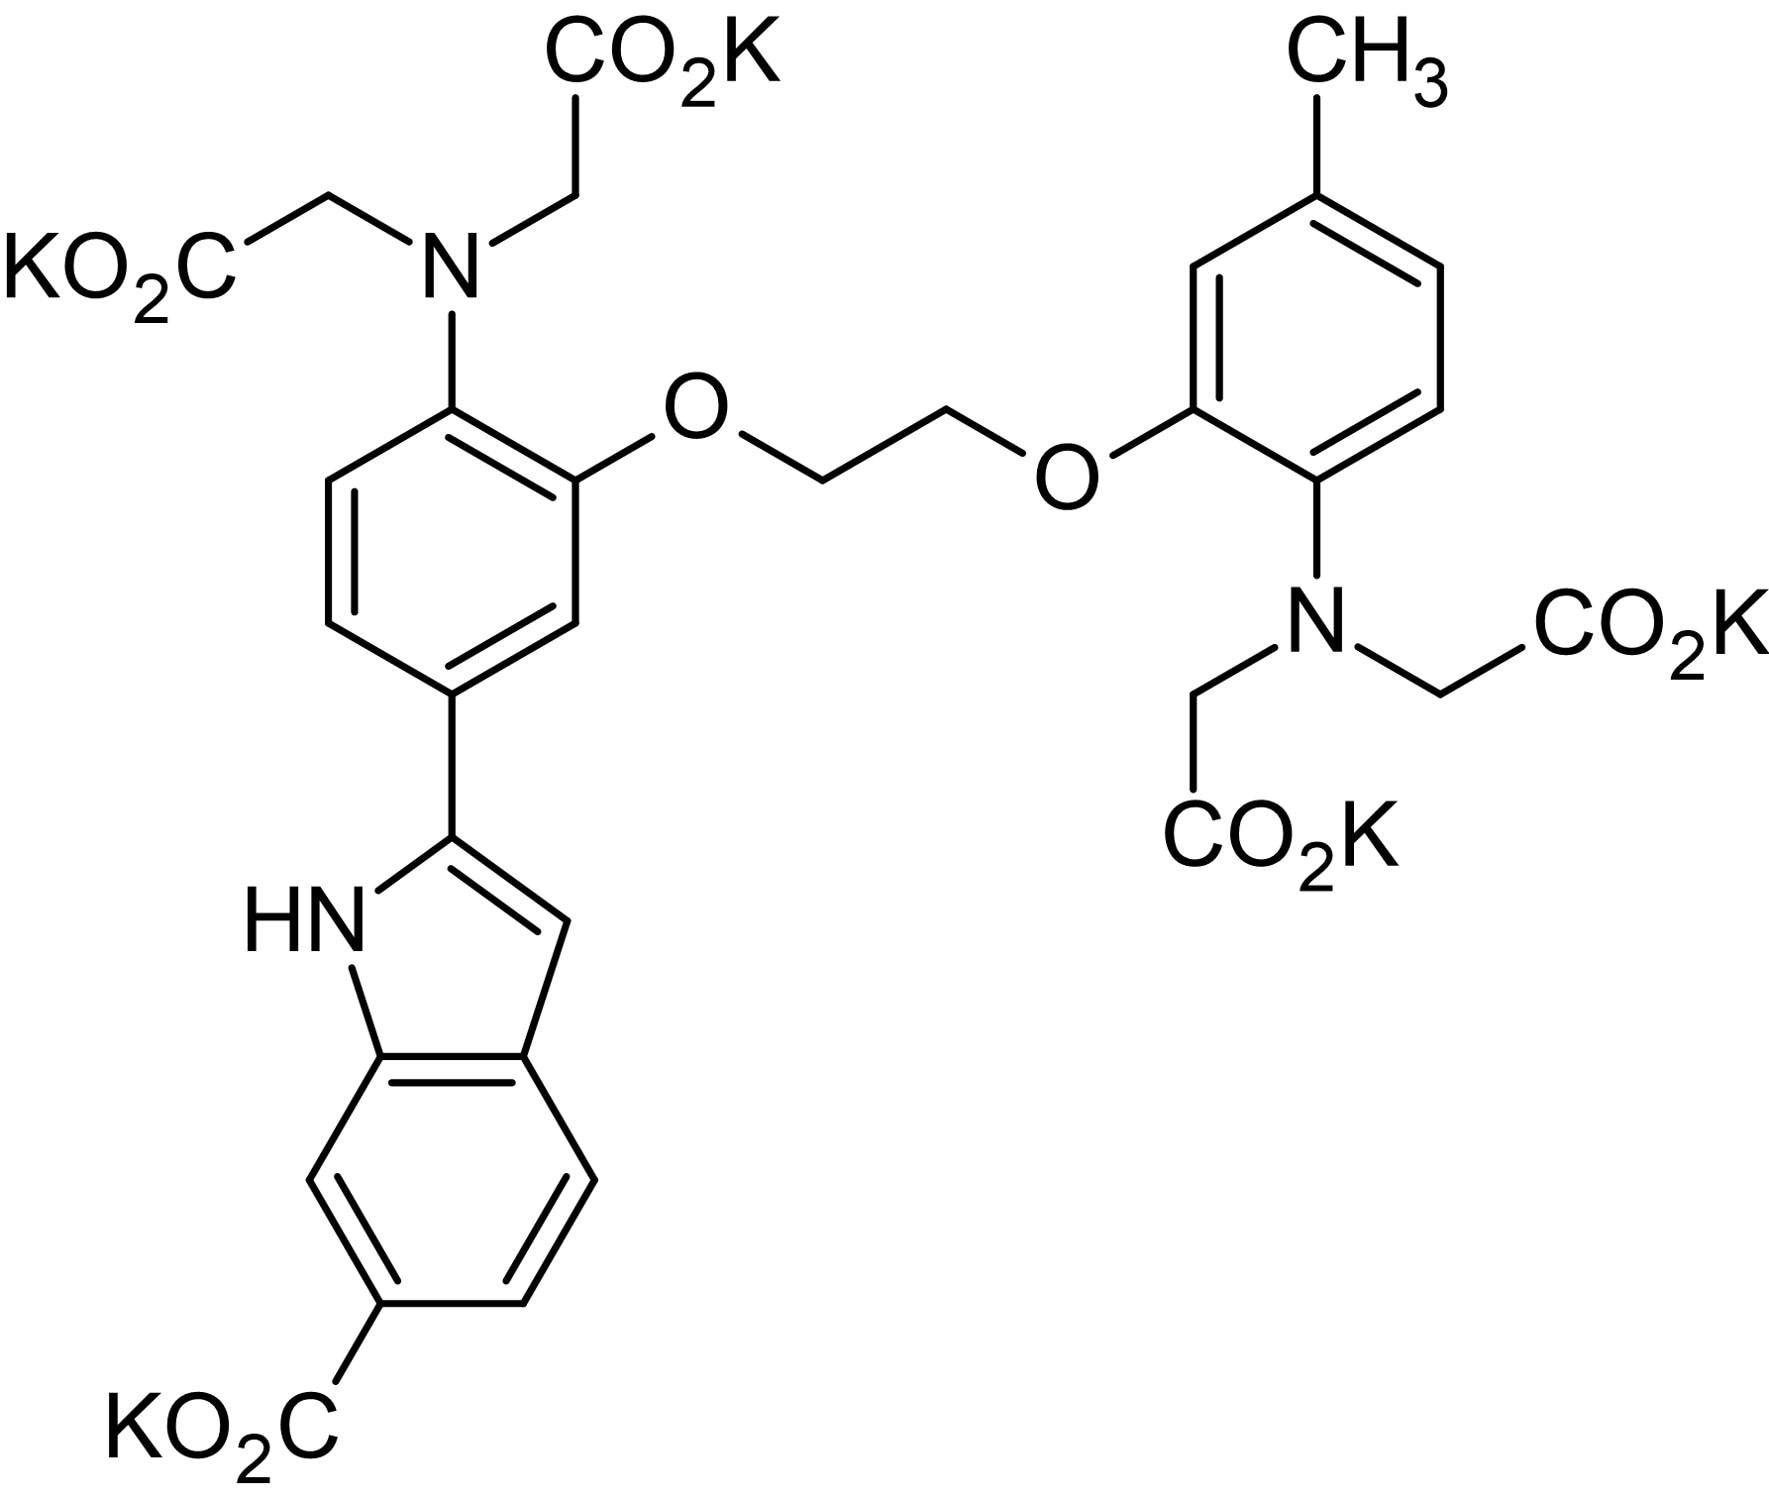 Chemical Structure - Indo-1 K+ salt, fluorescent Ca<sup>2+</sup> indicator (ab142779)